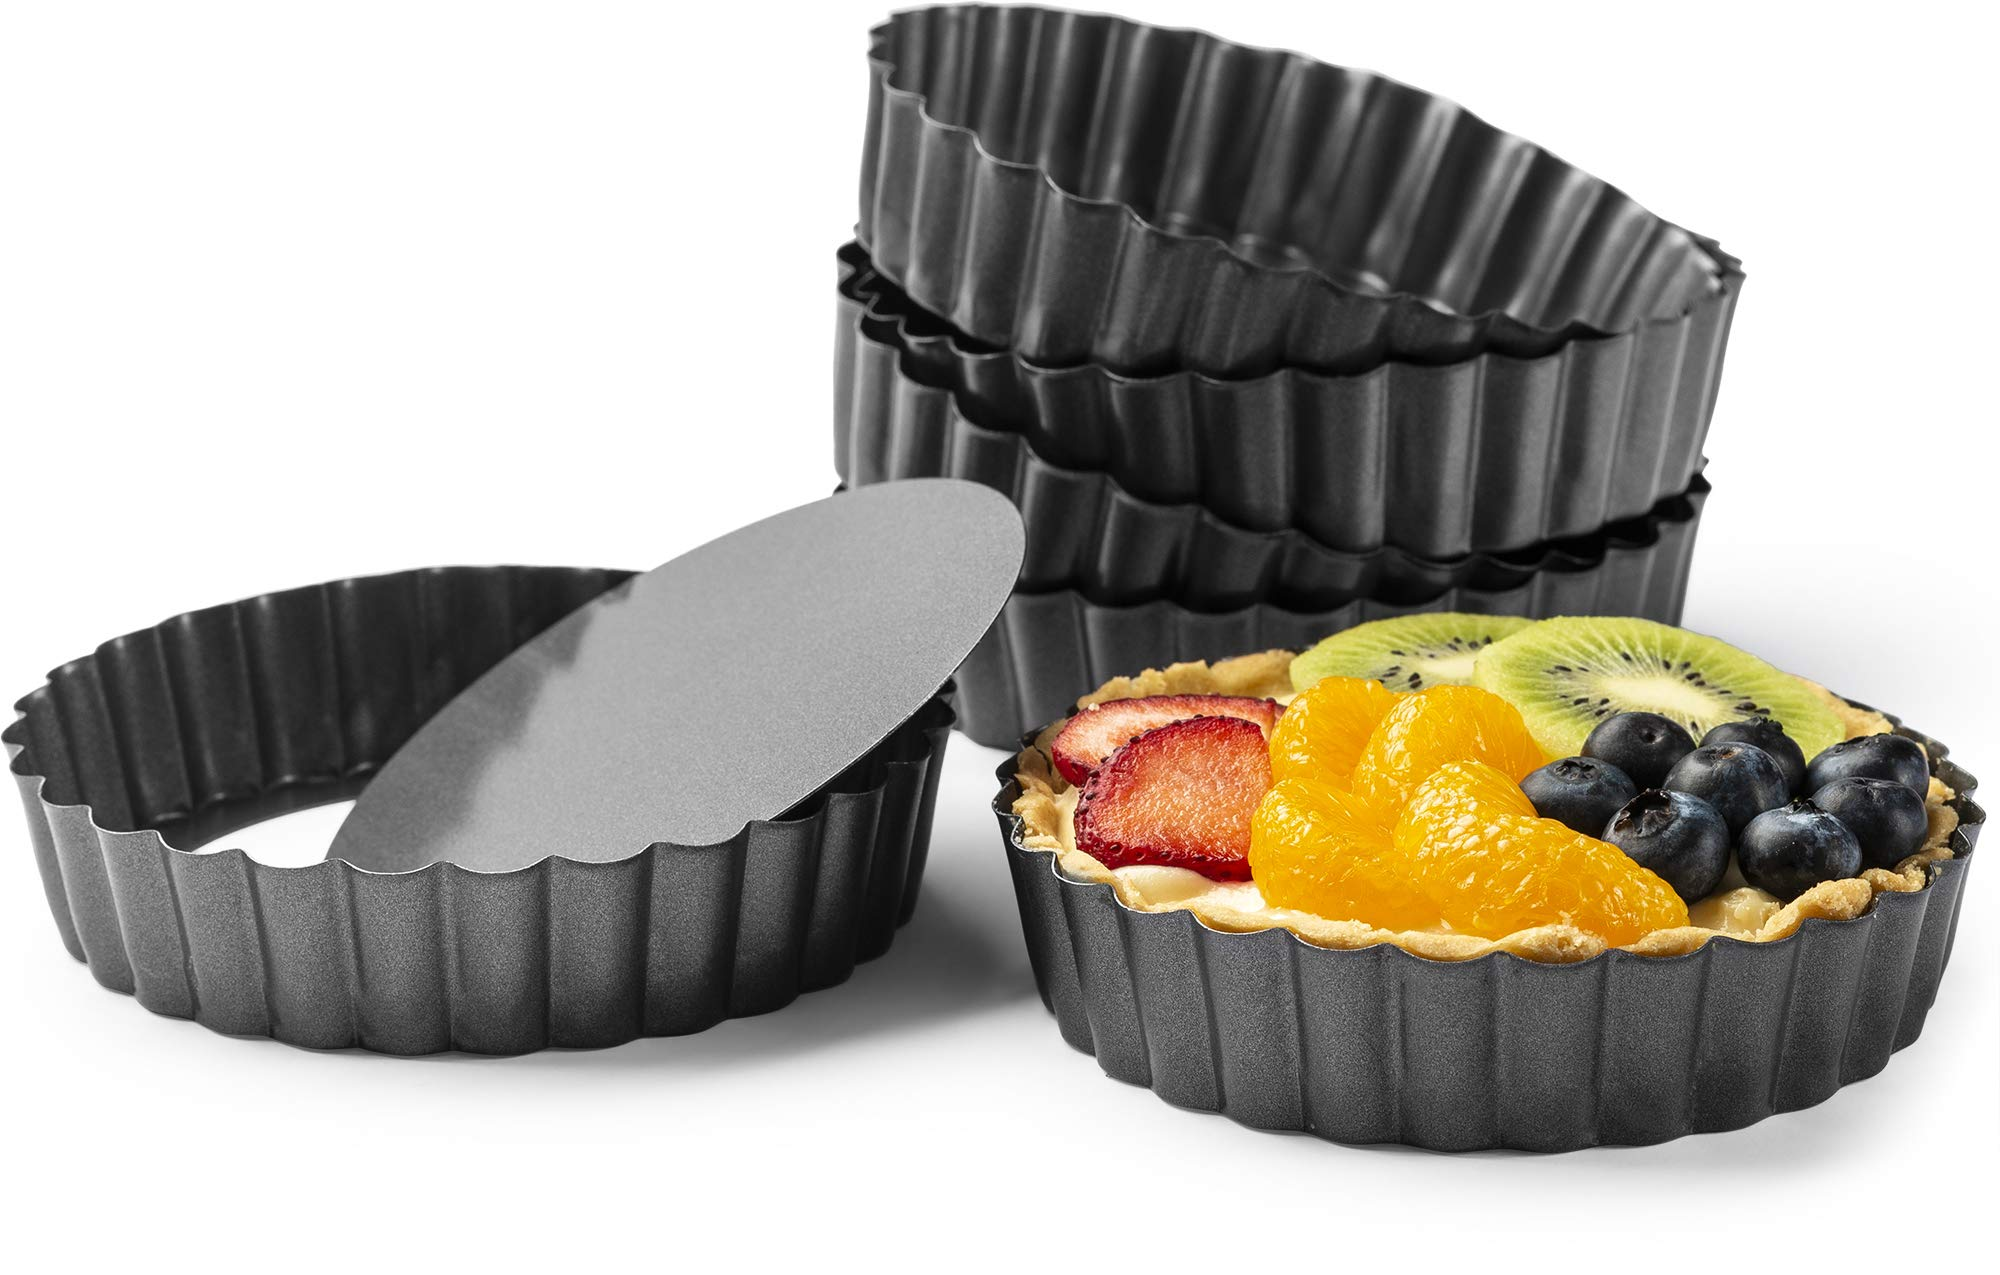 Gourmia GPA9375 Mini Tart Pans with Removable Bottom - 6 Pack, 5'' Diameter, 1'' Depth - Non Stick Carbon Steel - Miniature Molds For Pies, Cheese Cakes, Desserts, Quiche pan and More by Gourmia